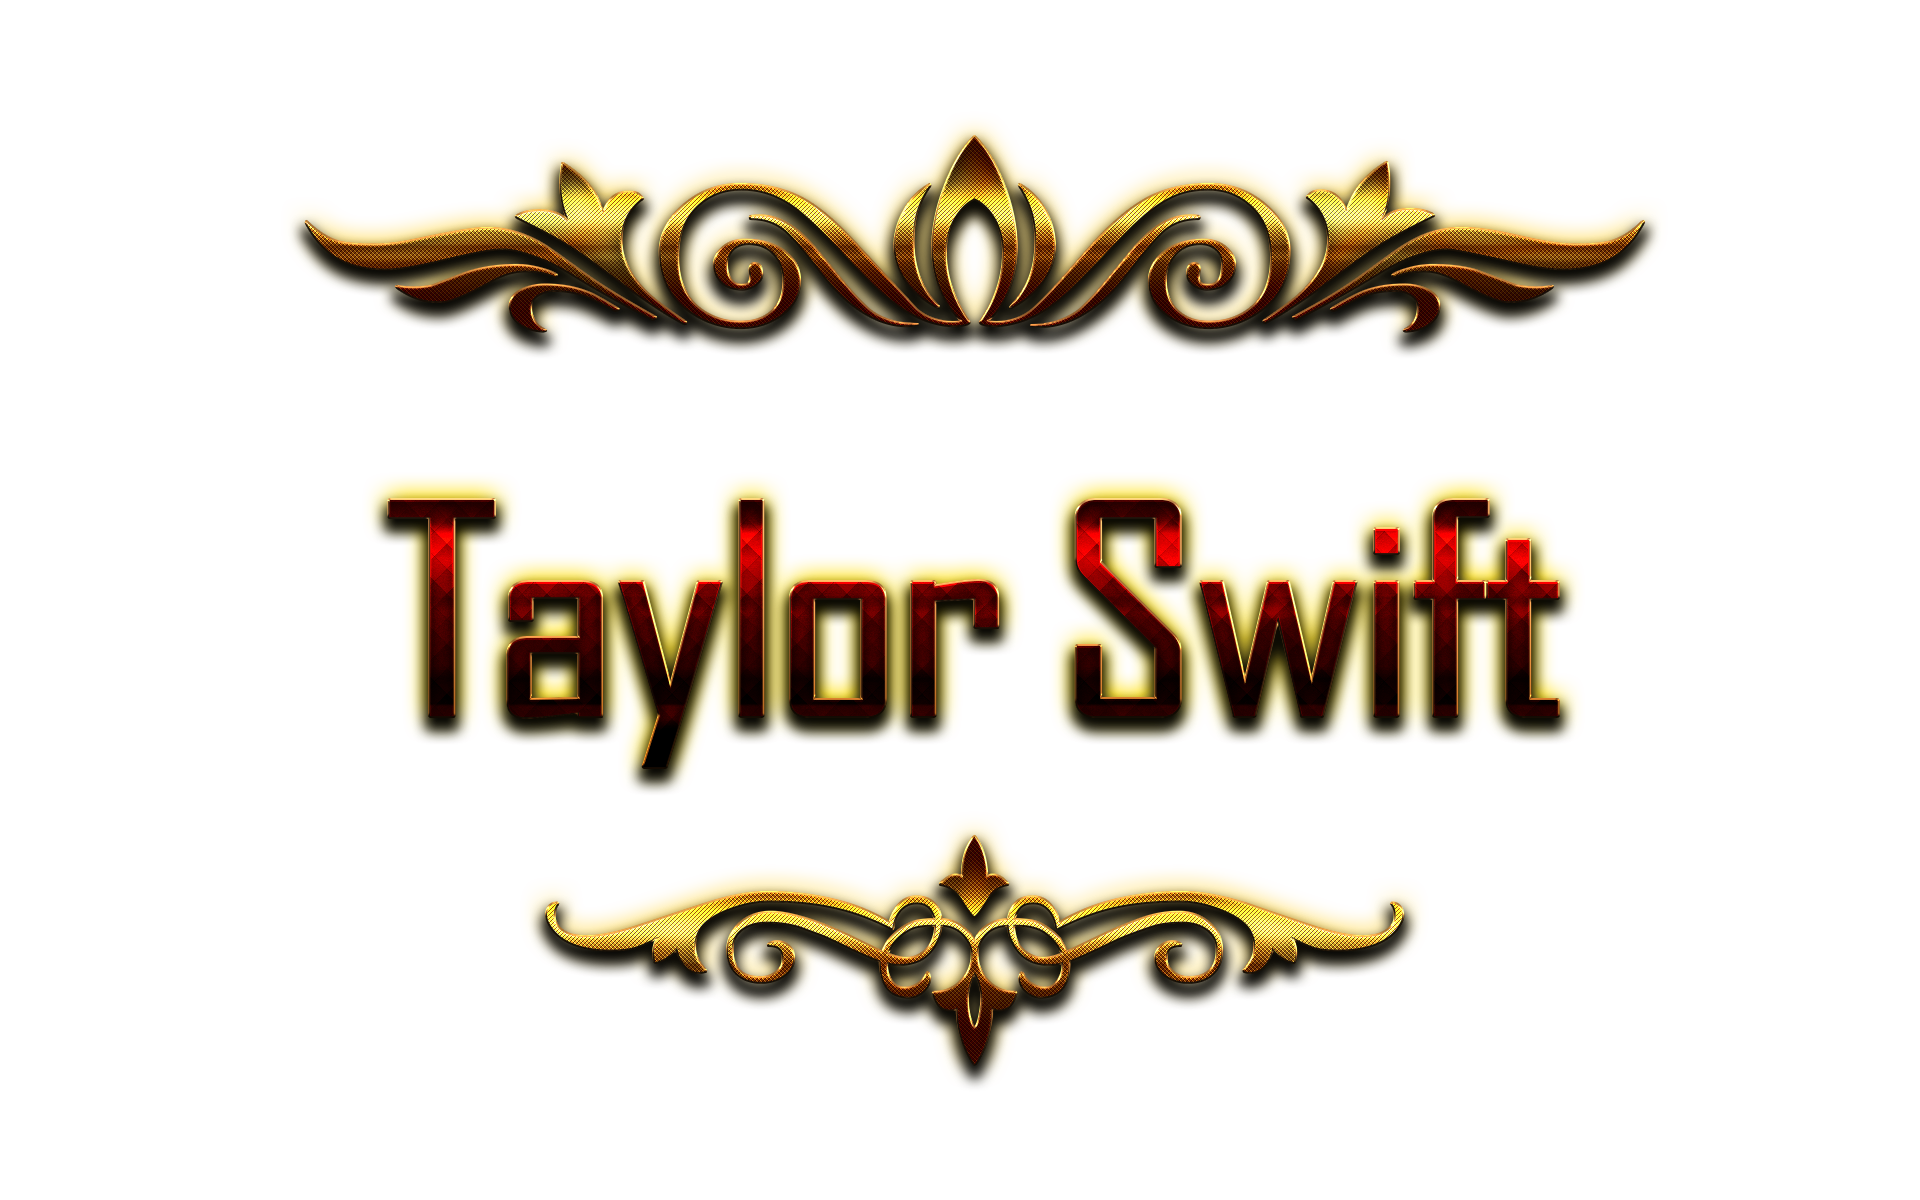 Taylor Swift PNG Transparent Images Free Download.